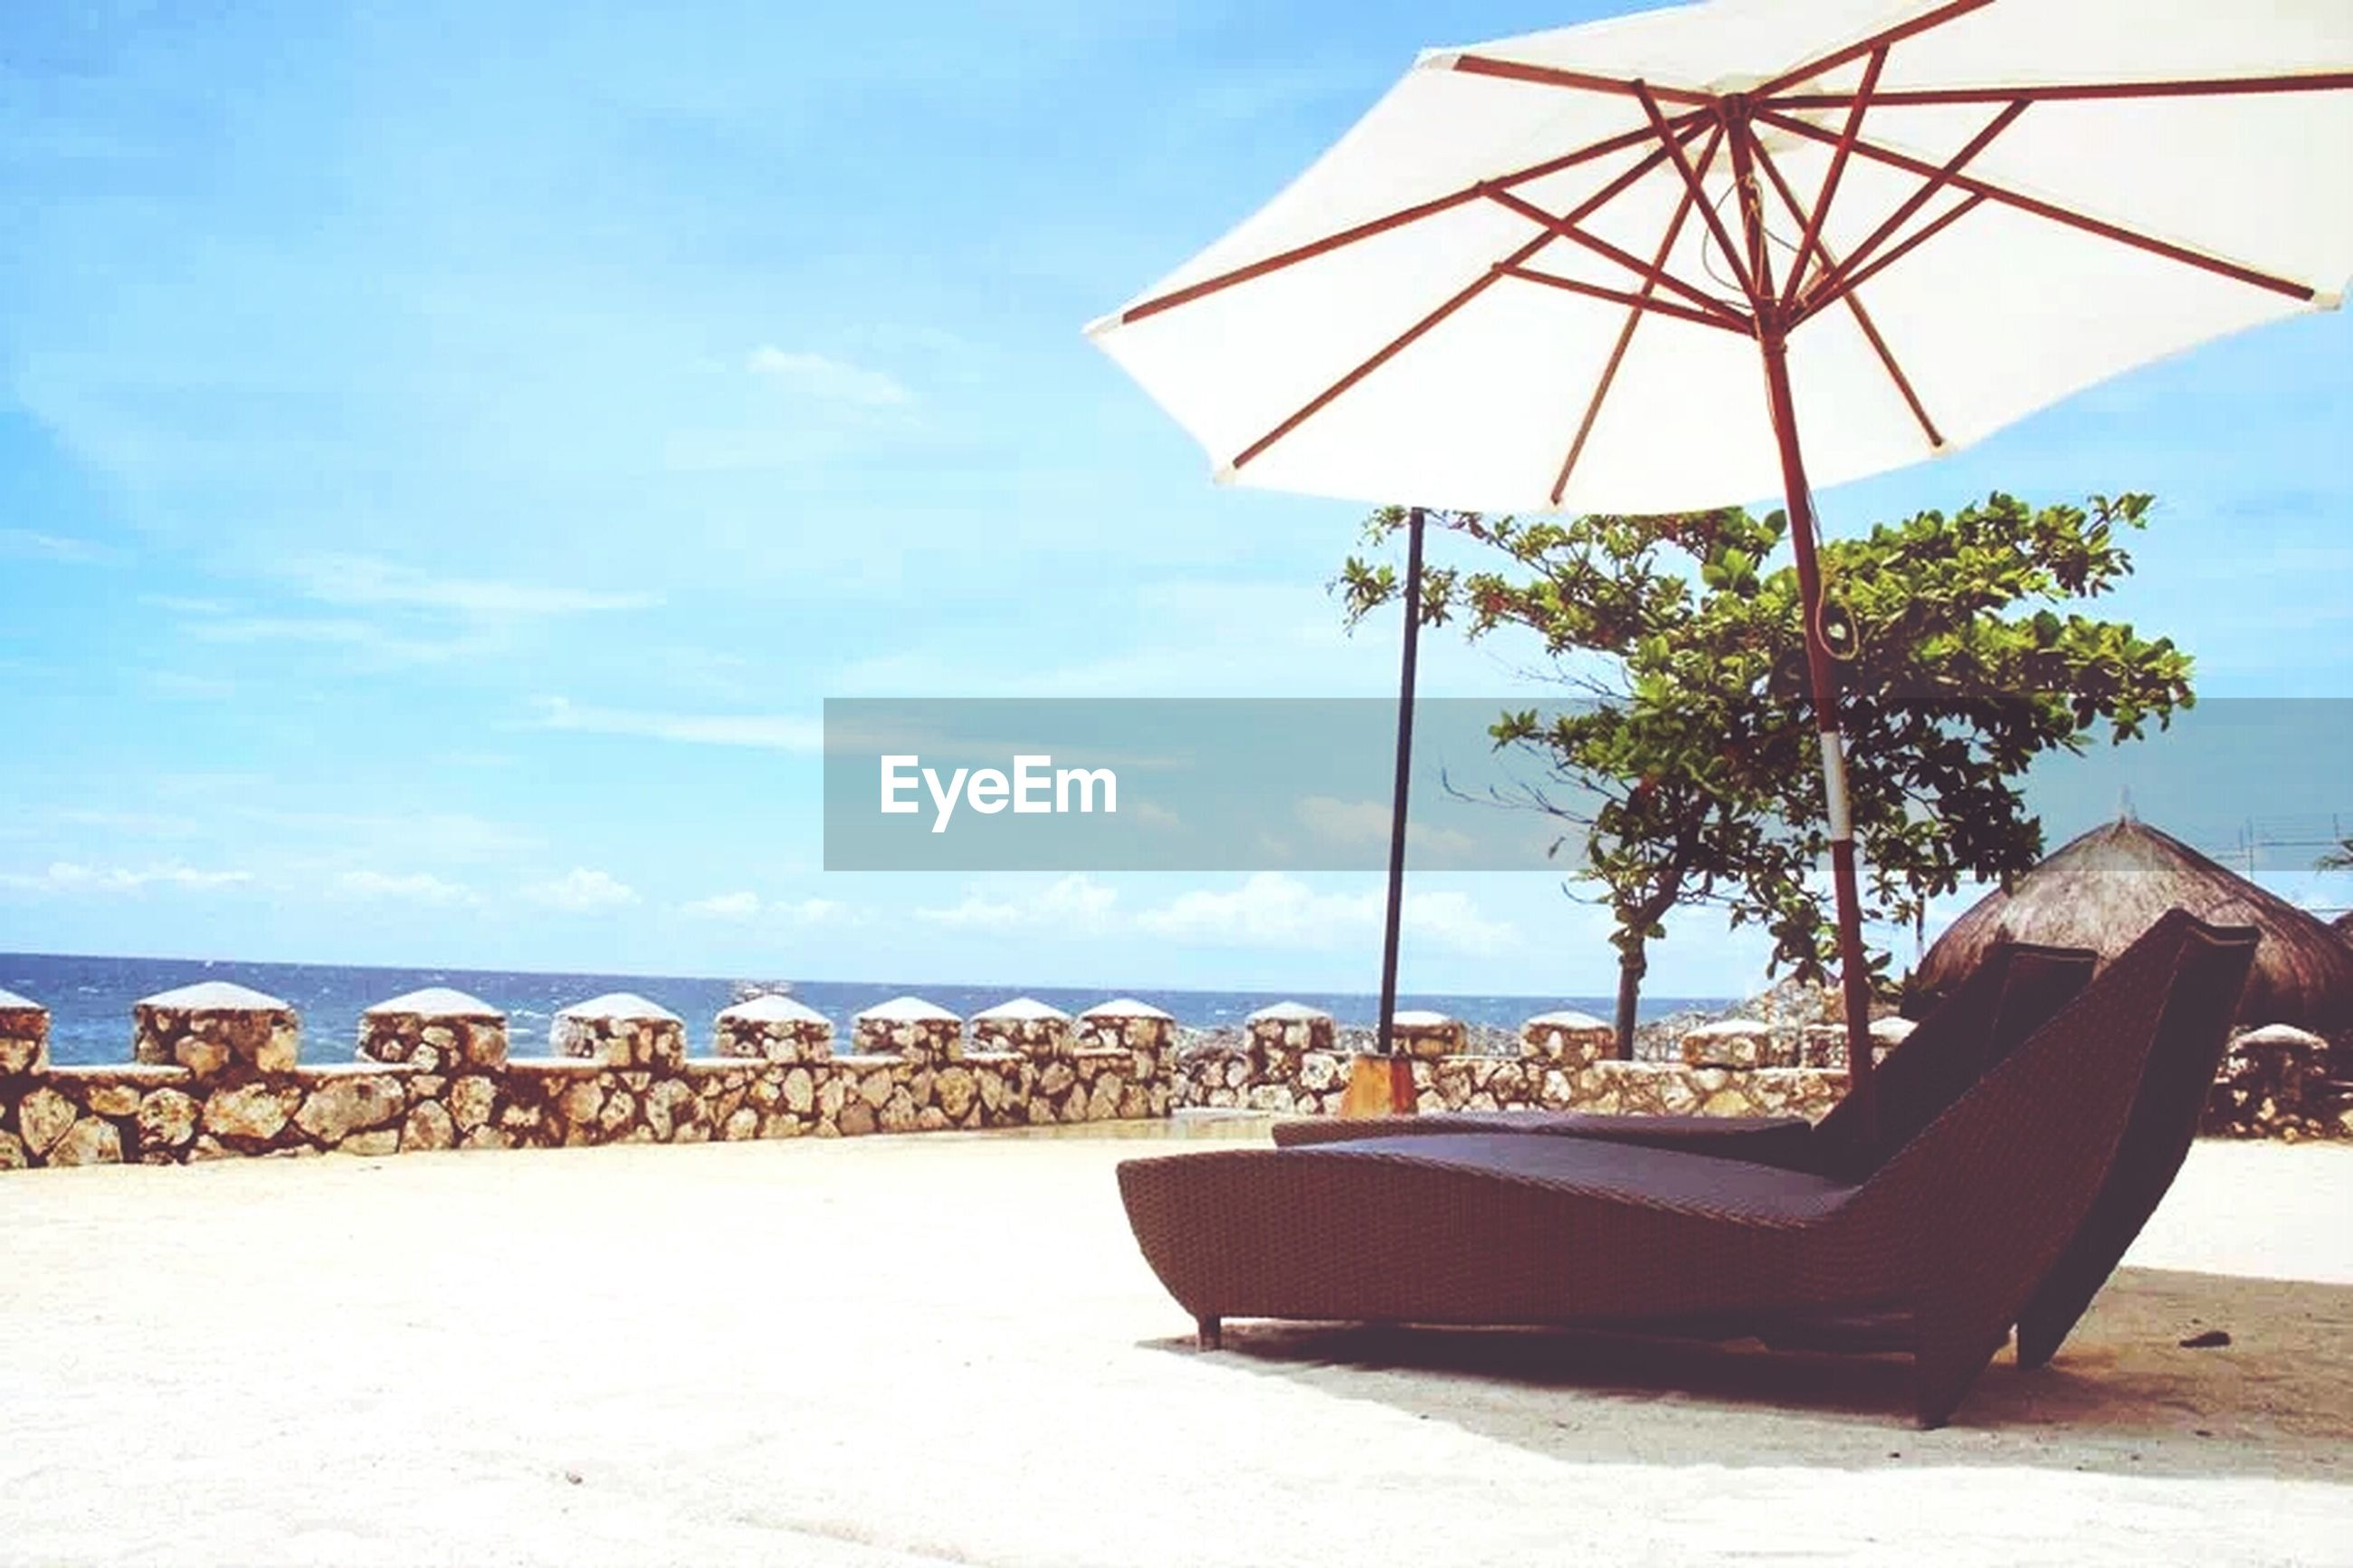 beach, sea, sand, beach umbrella, sky, horizon over water, sunshade, parasol, shore, lounge chair, thatched roof, water, summer, chair, vacations, absence, tranquility, tranquil scene, sunlight, built structure